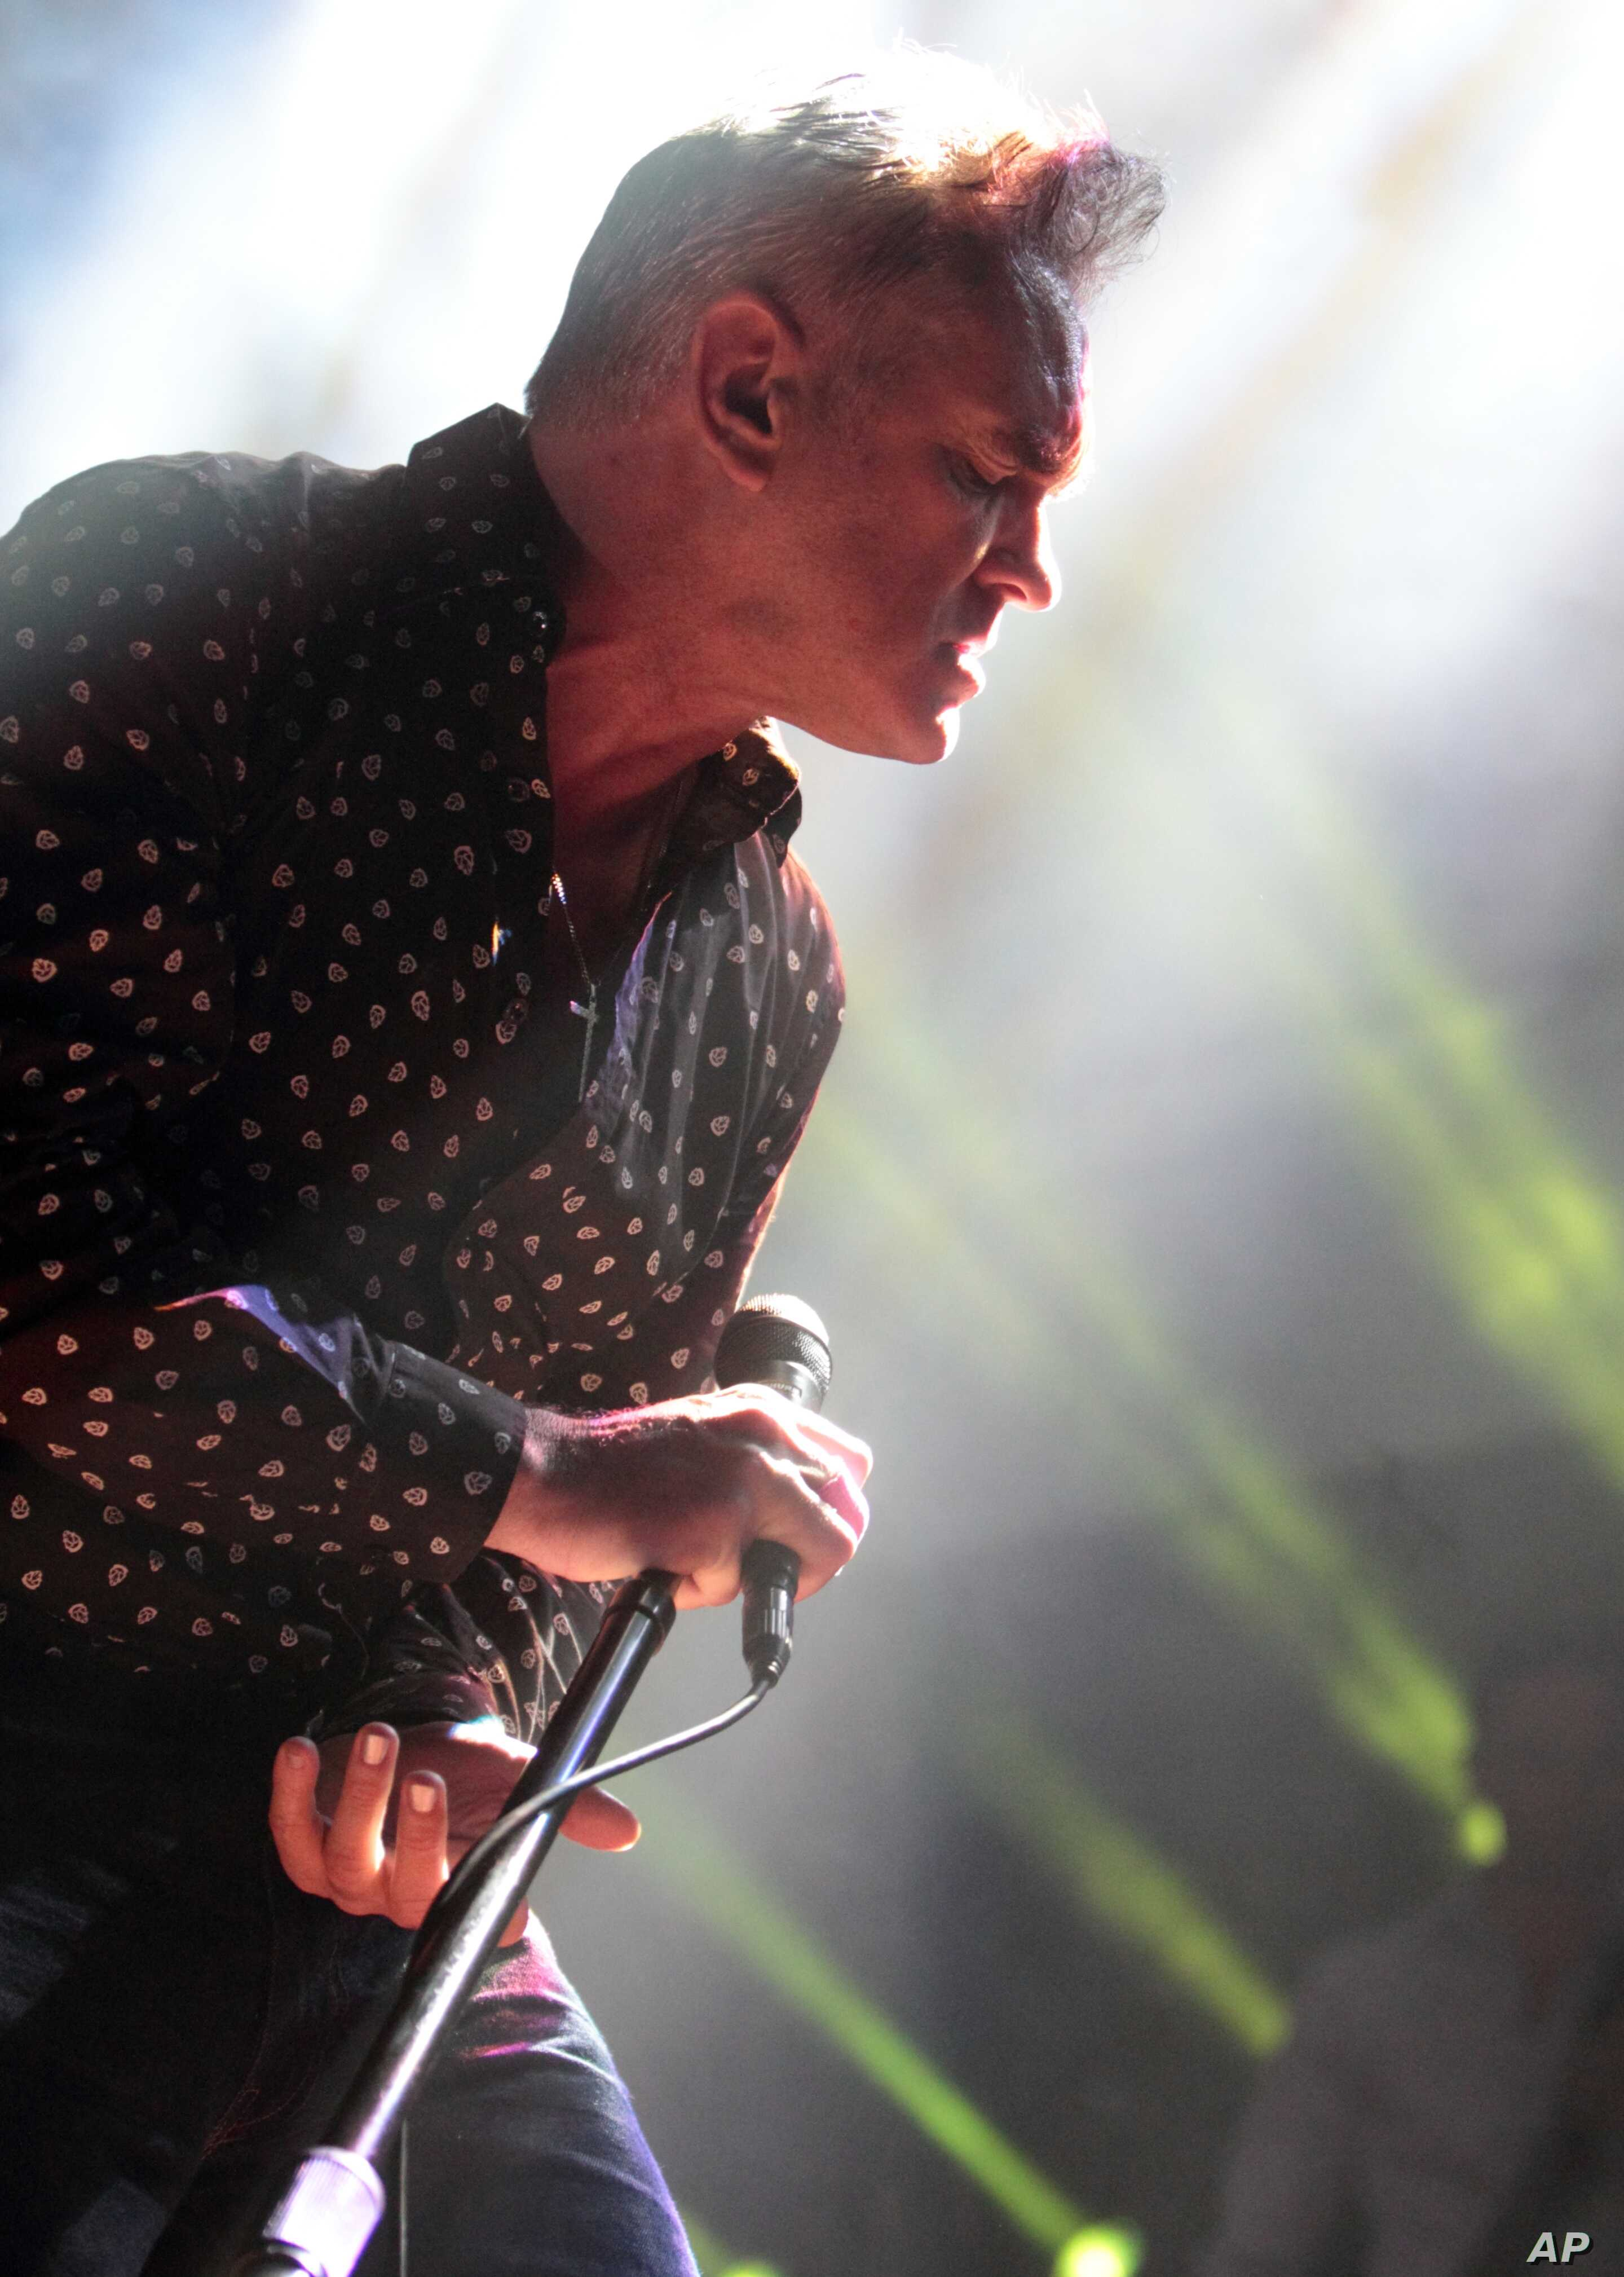 Mad World: 80s New Wave Rock Acts in Their Own Words | Voice of